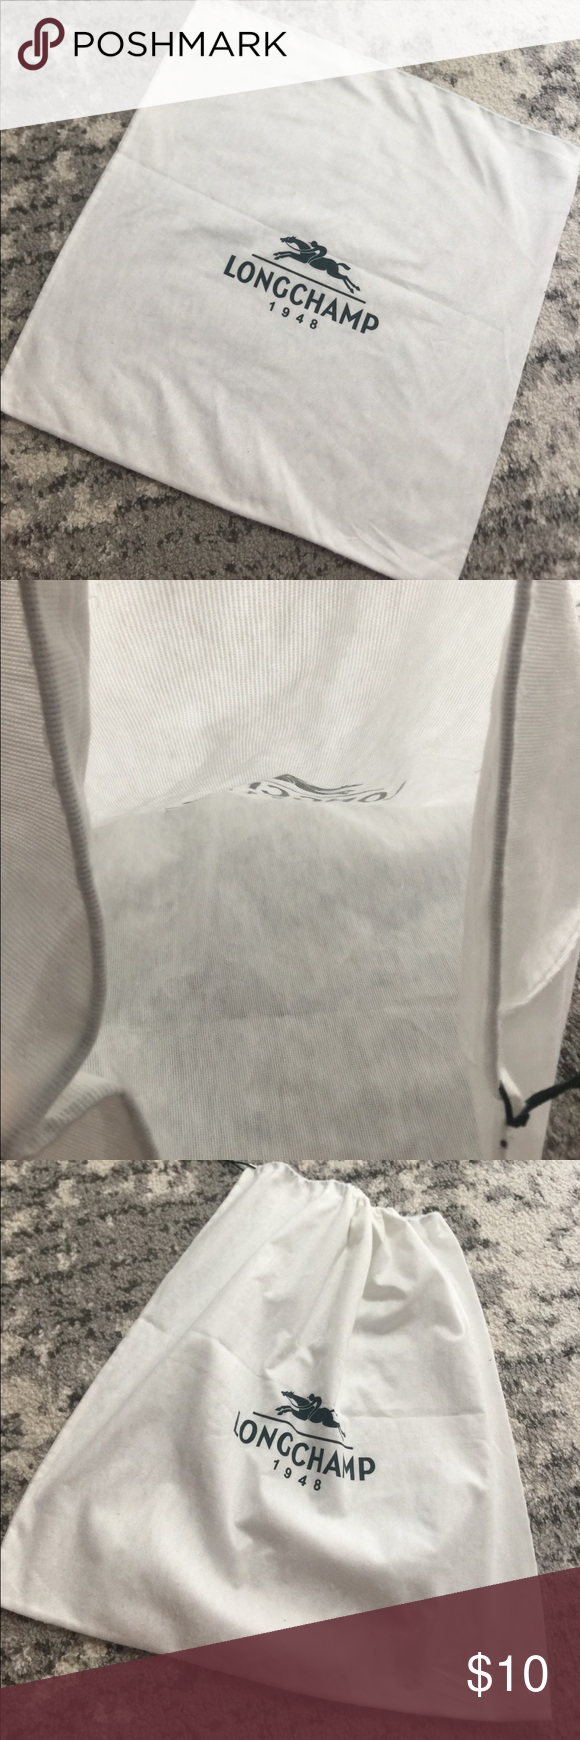 23f5d1da3878 Longchamp 19.5x20 Square Dust Bag Gently used. No stains or tears.  Longchamp Bags